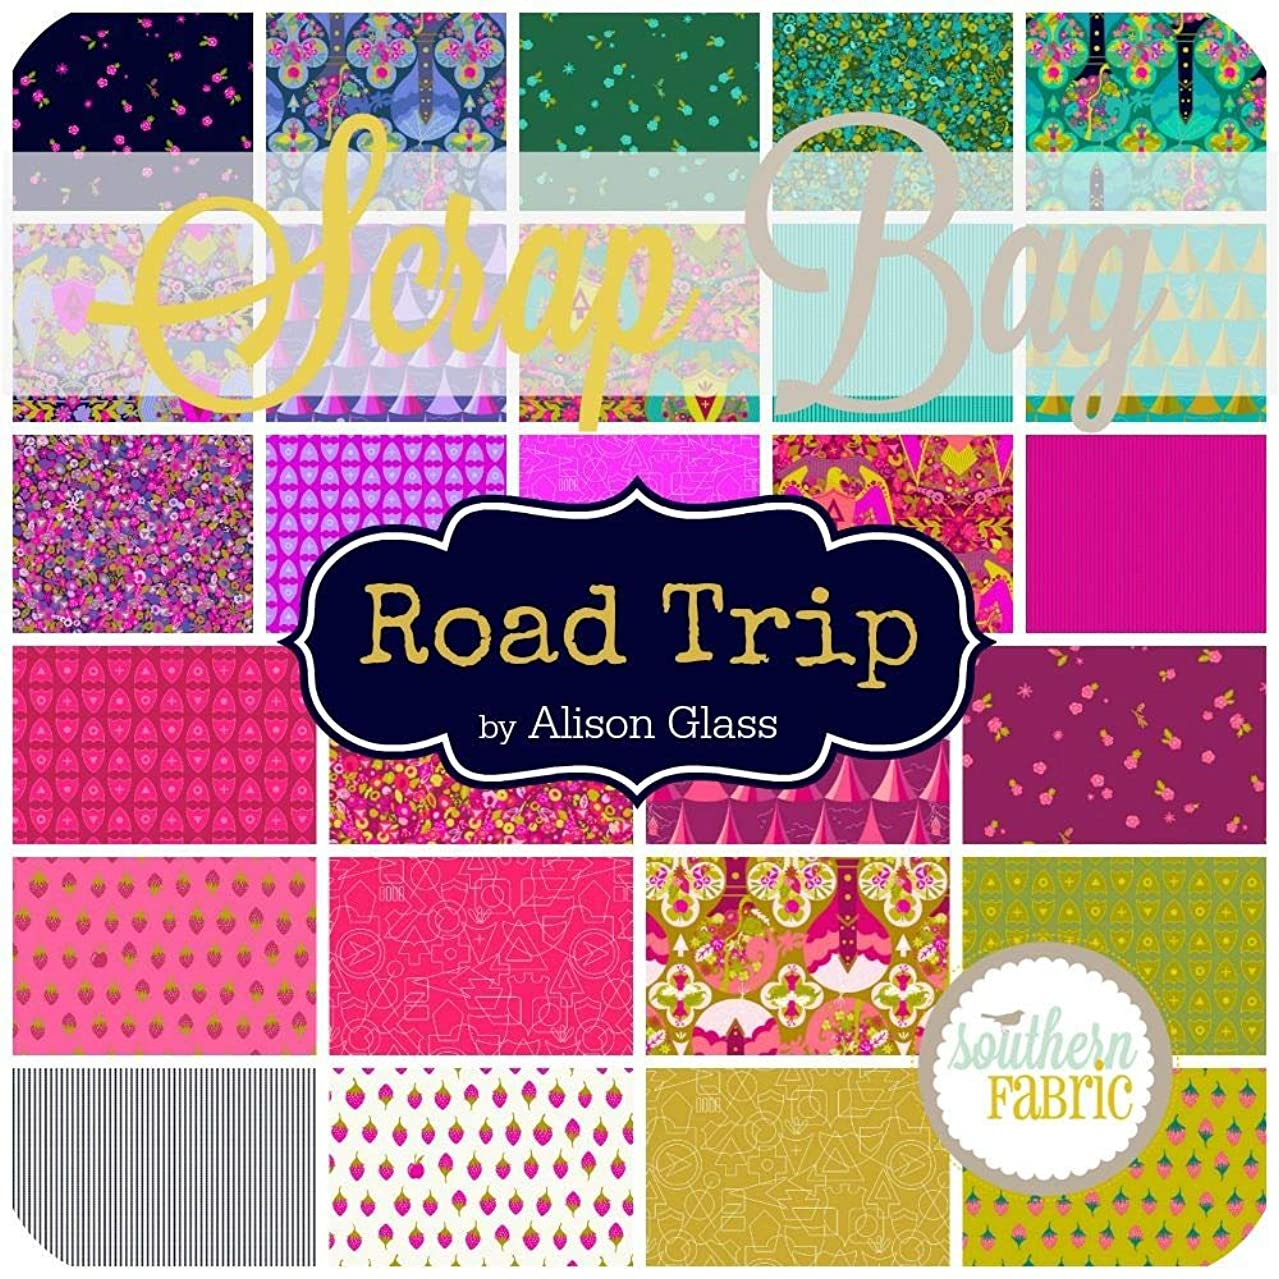 Andover Road Trip Scrap Bag (Approx 2 Yards) by Alison Glass 2 Yards of Fabric (at Least 8 Pieces) 2 to 17 inch Strips DIY Quilt Fabric